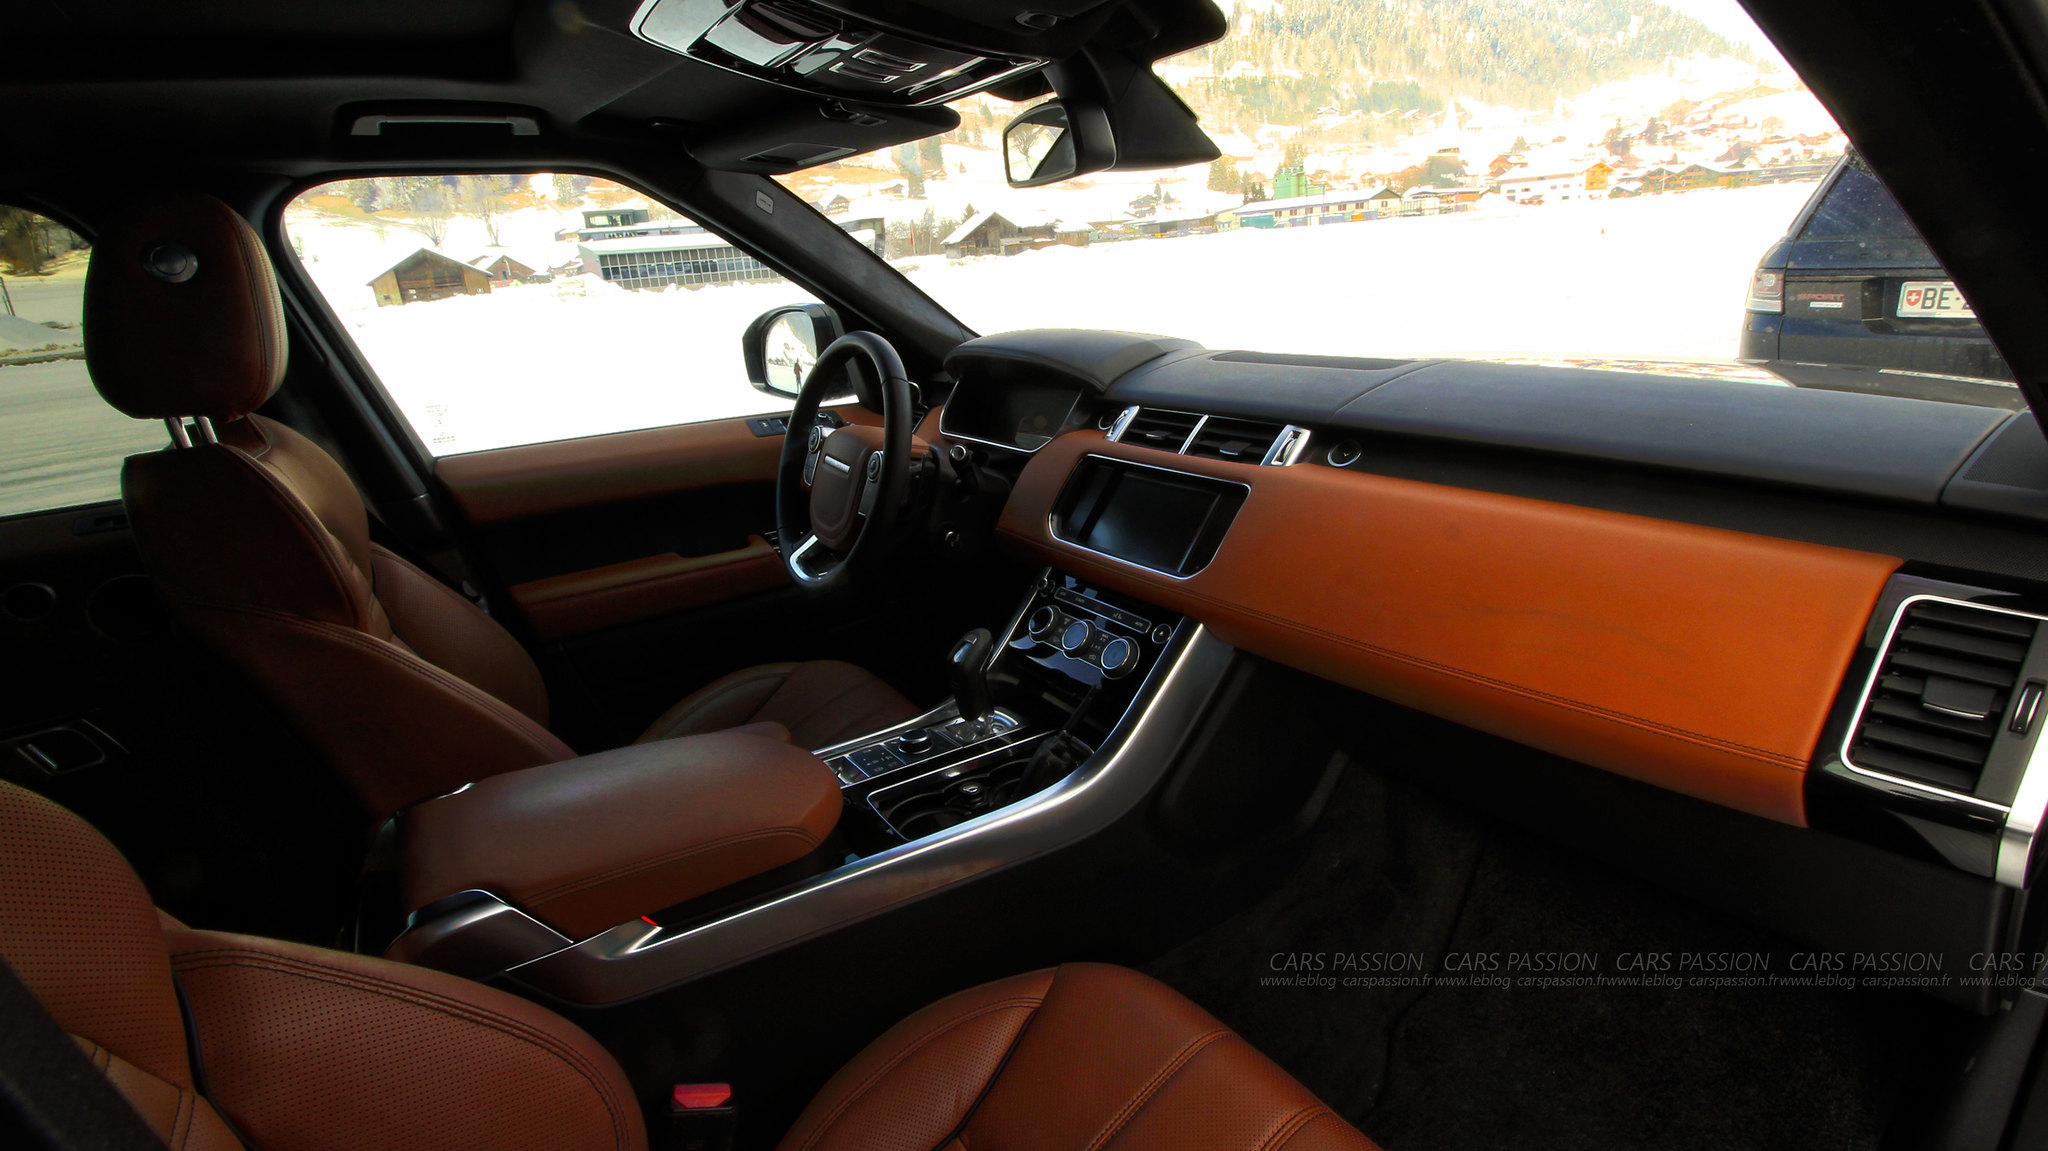 land-rover-ice-drivng-esperience-gstaad-(25)